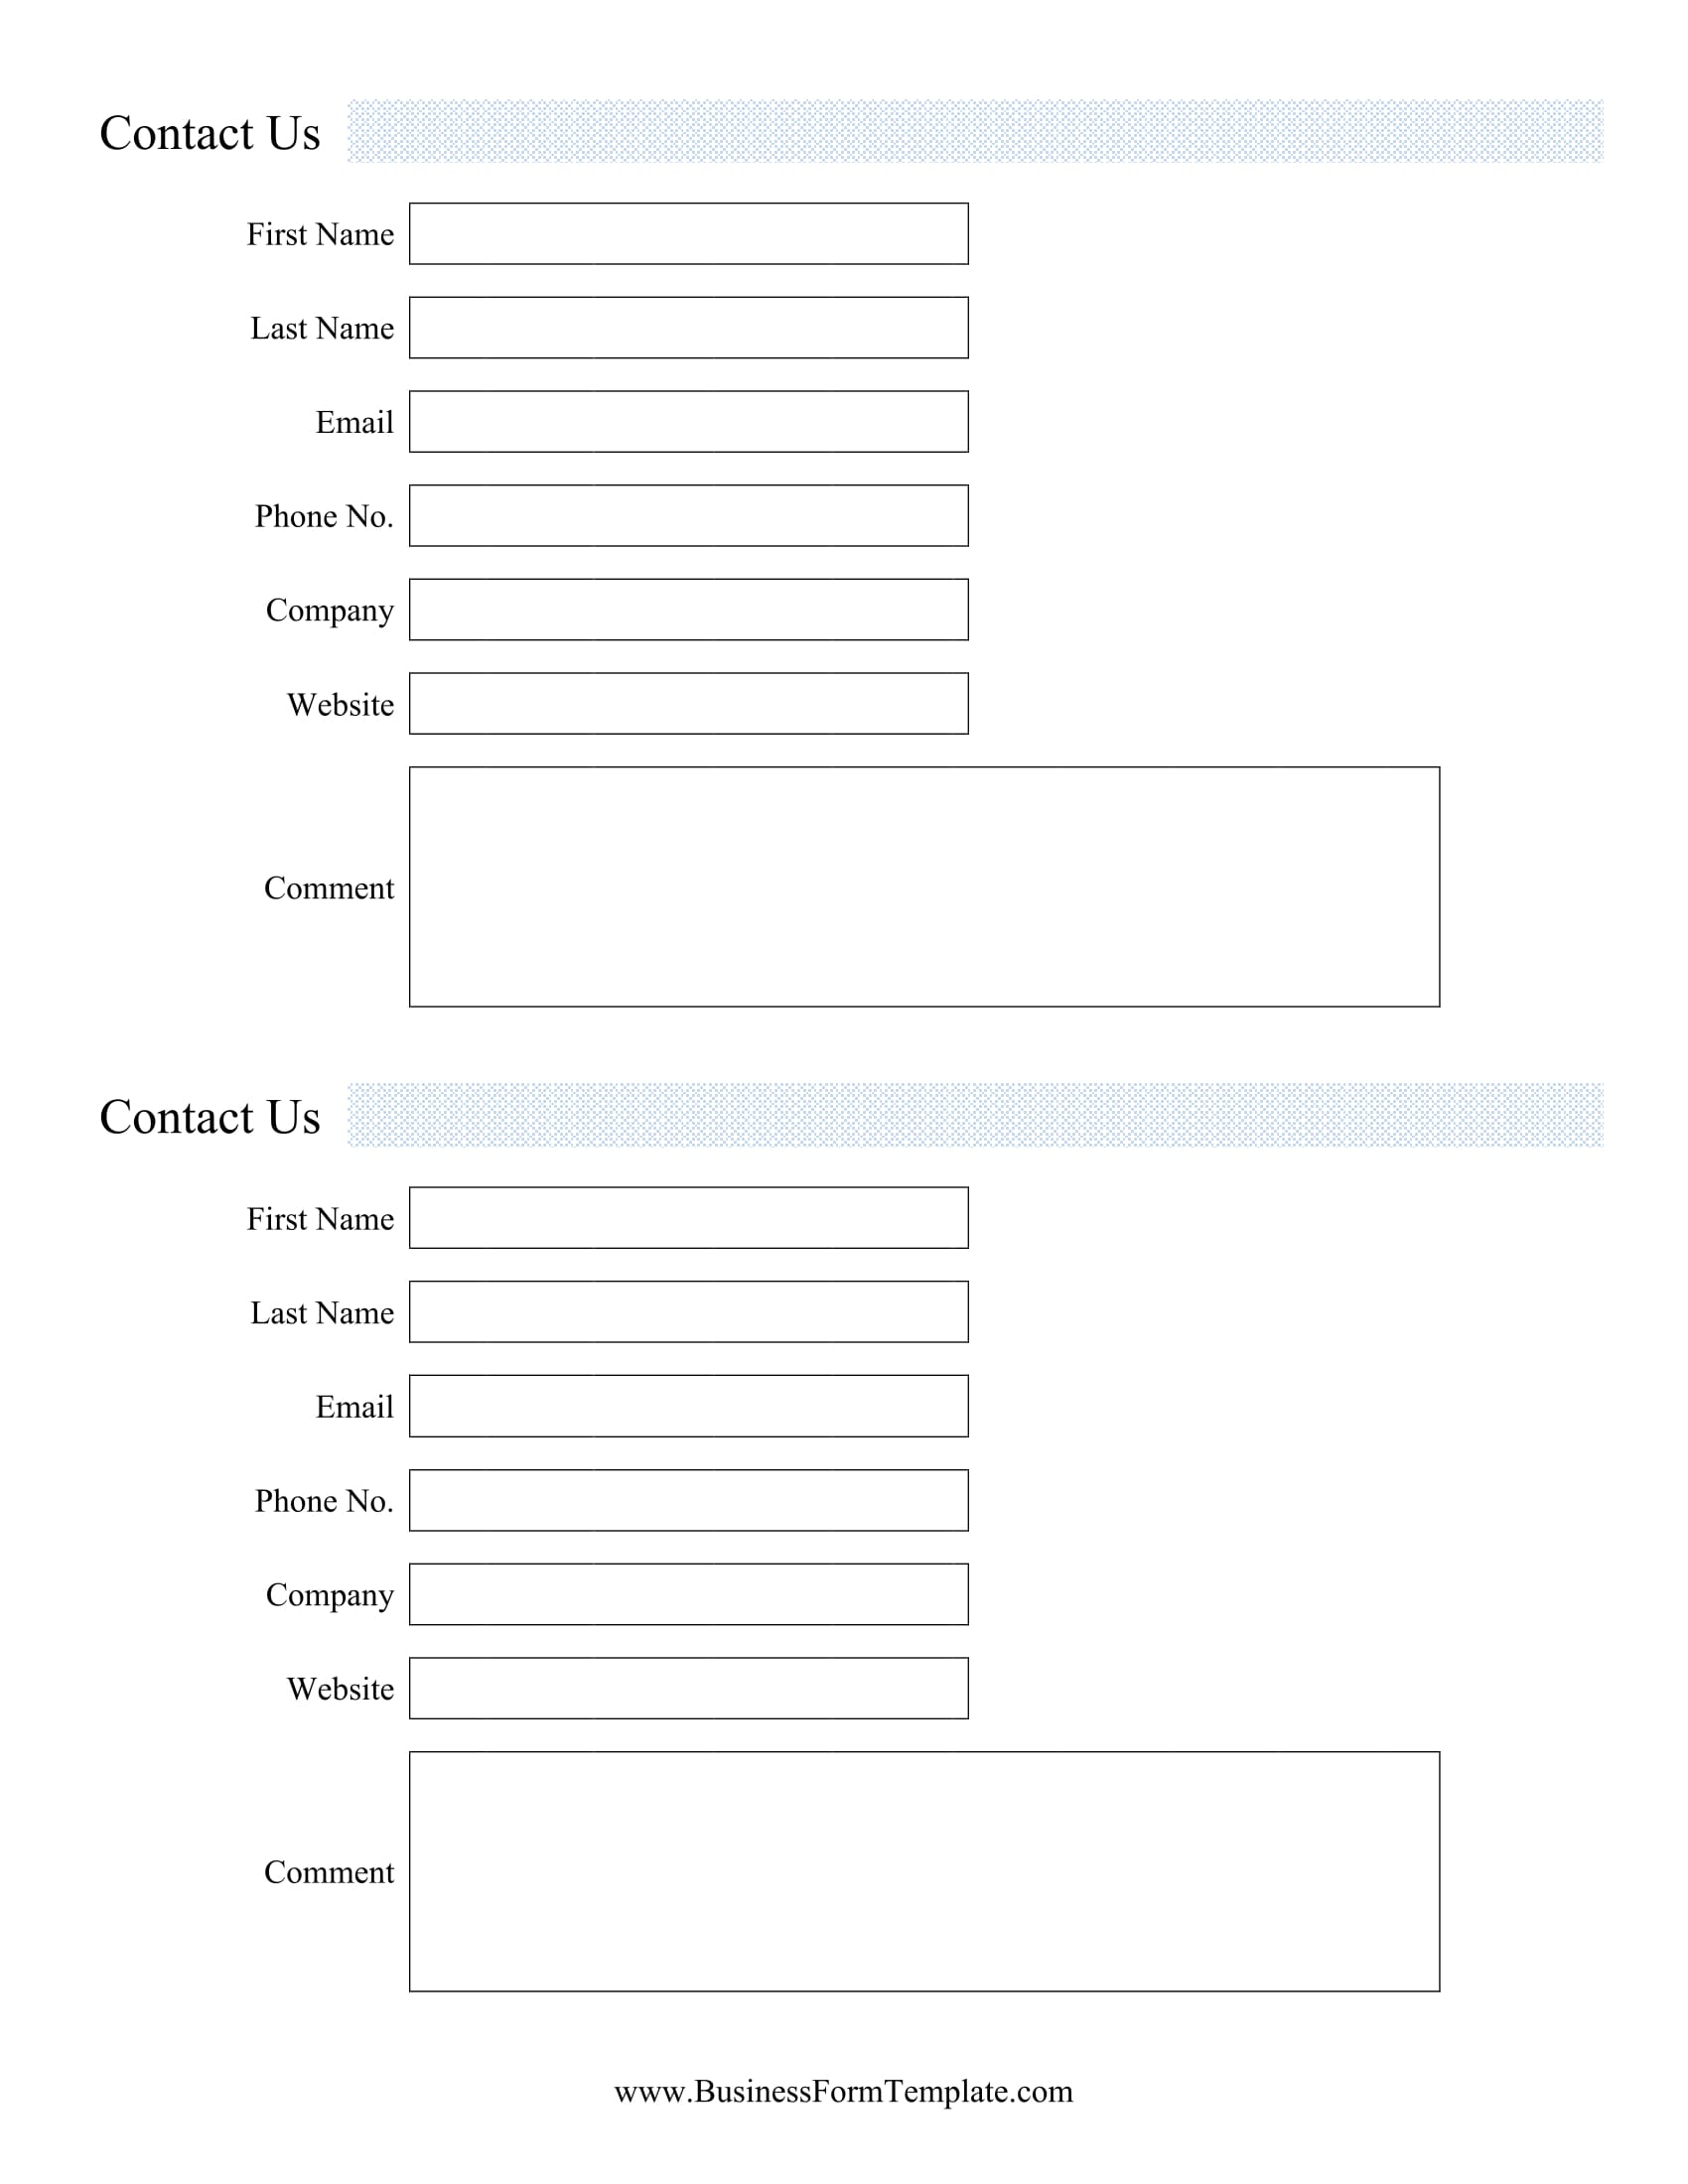 image regarding Contact Information Form Template identify Cost-free 13+ Get in touch with Written content Types inside of Term PDF